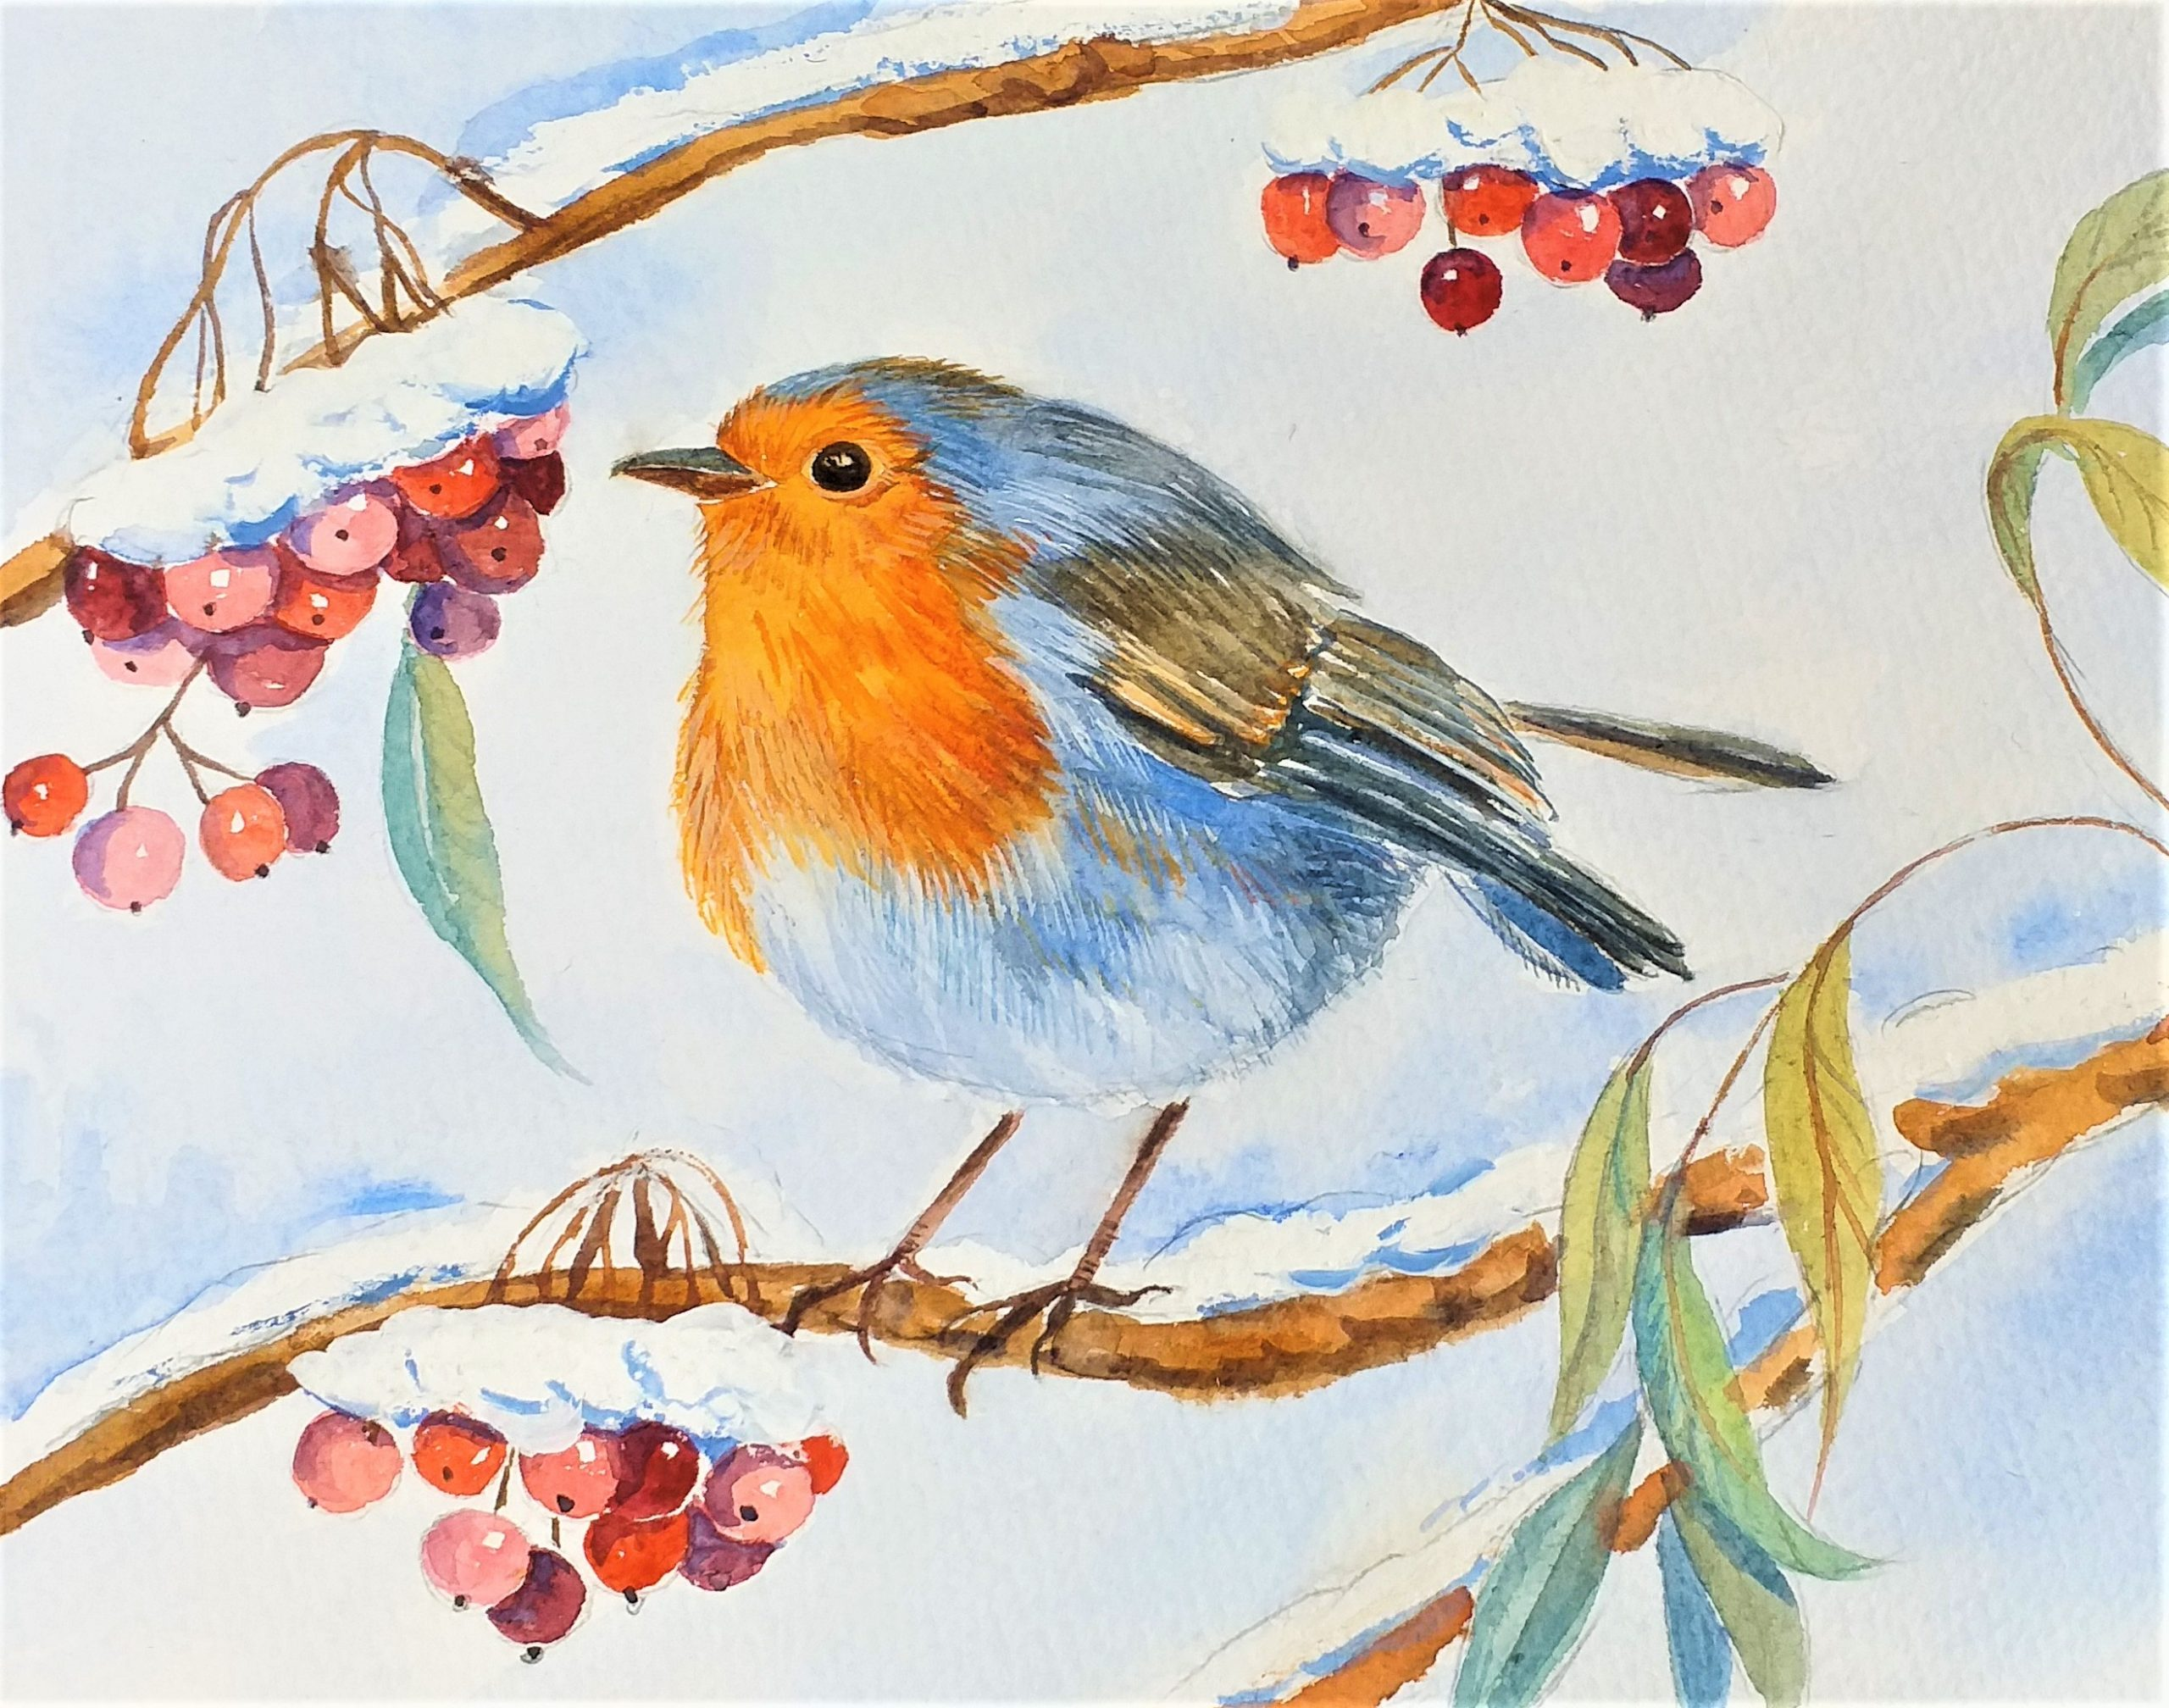 Watercolour Christmas Card with red Robin painted by artist Raya Brown